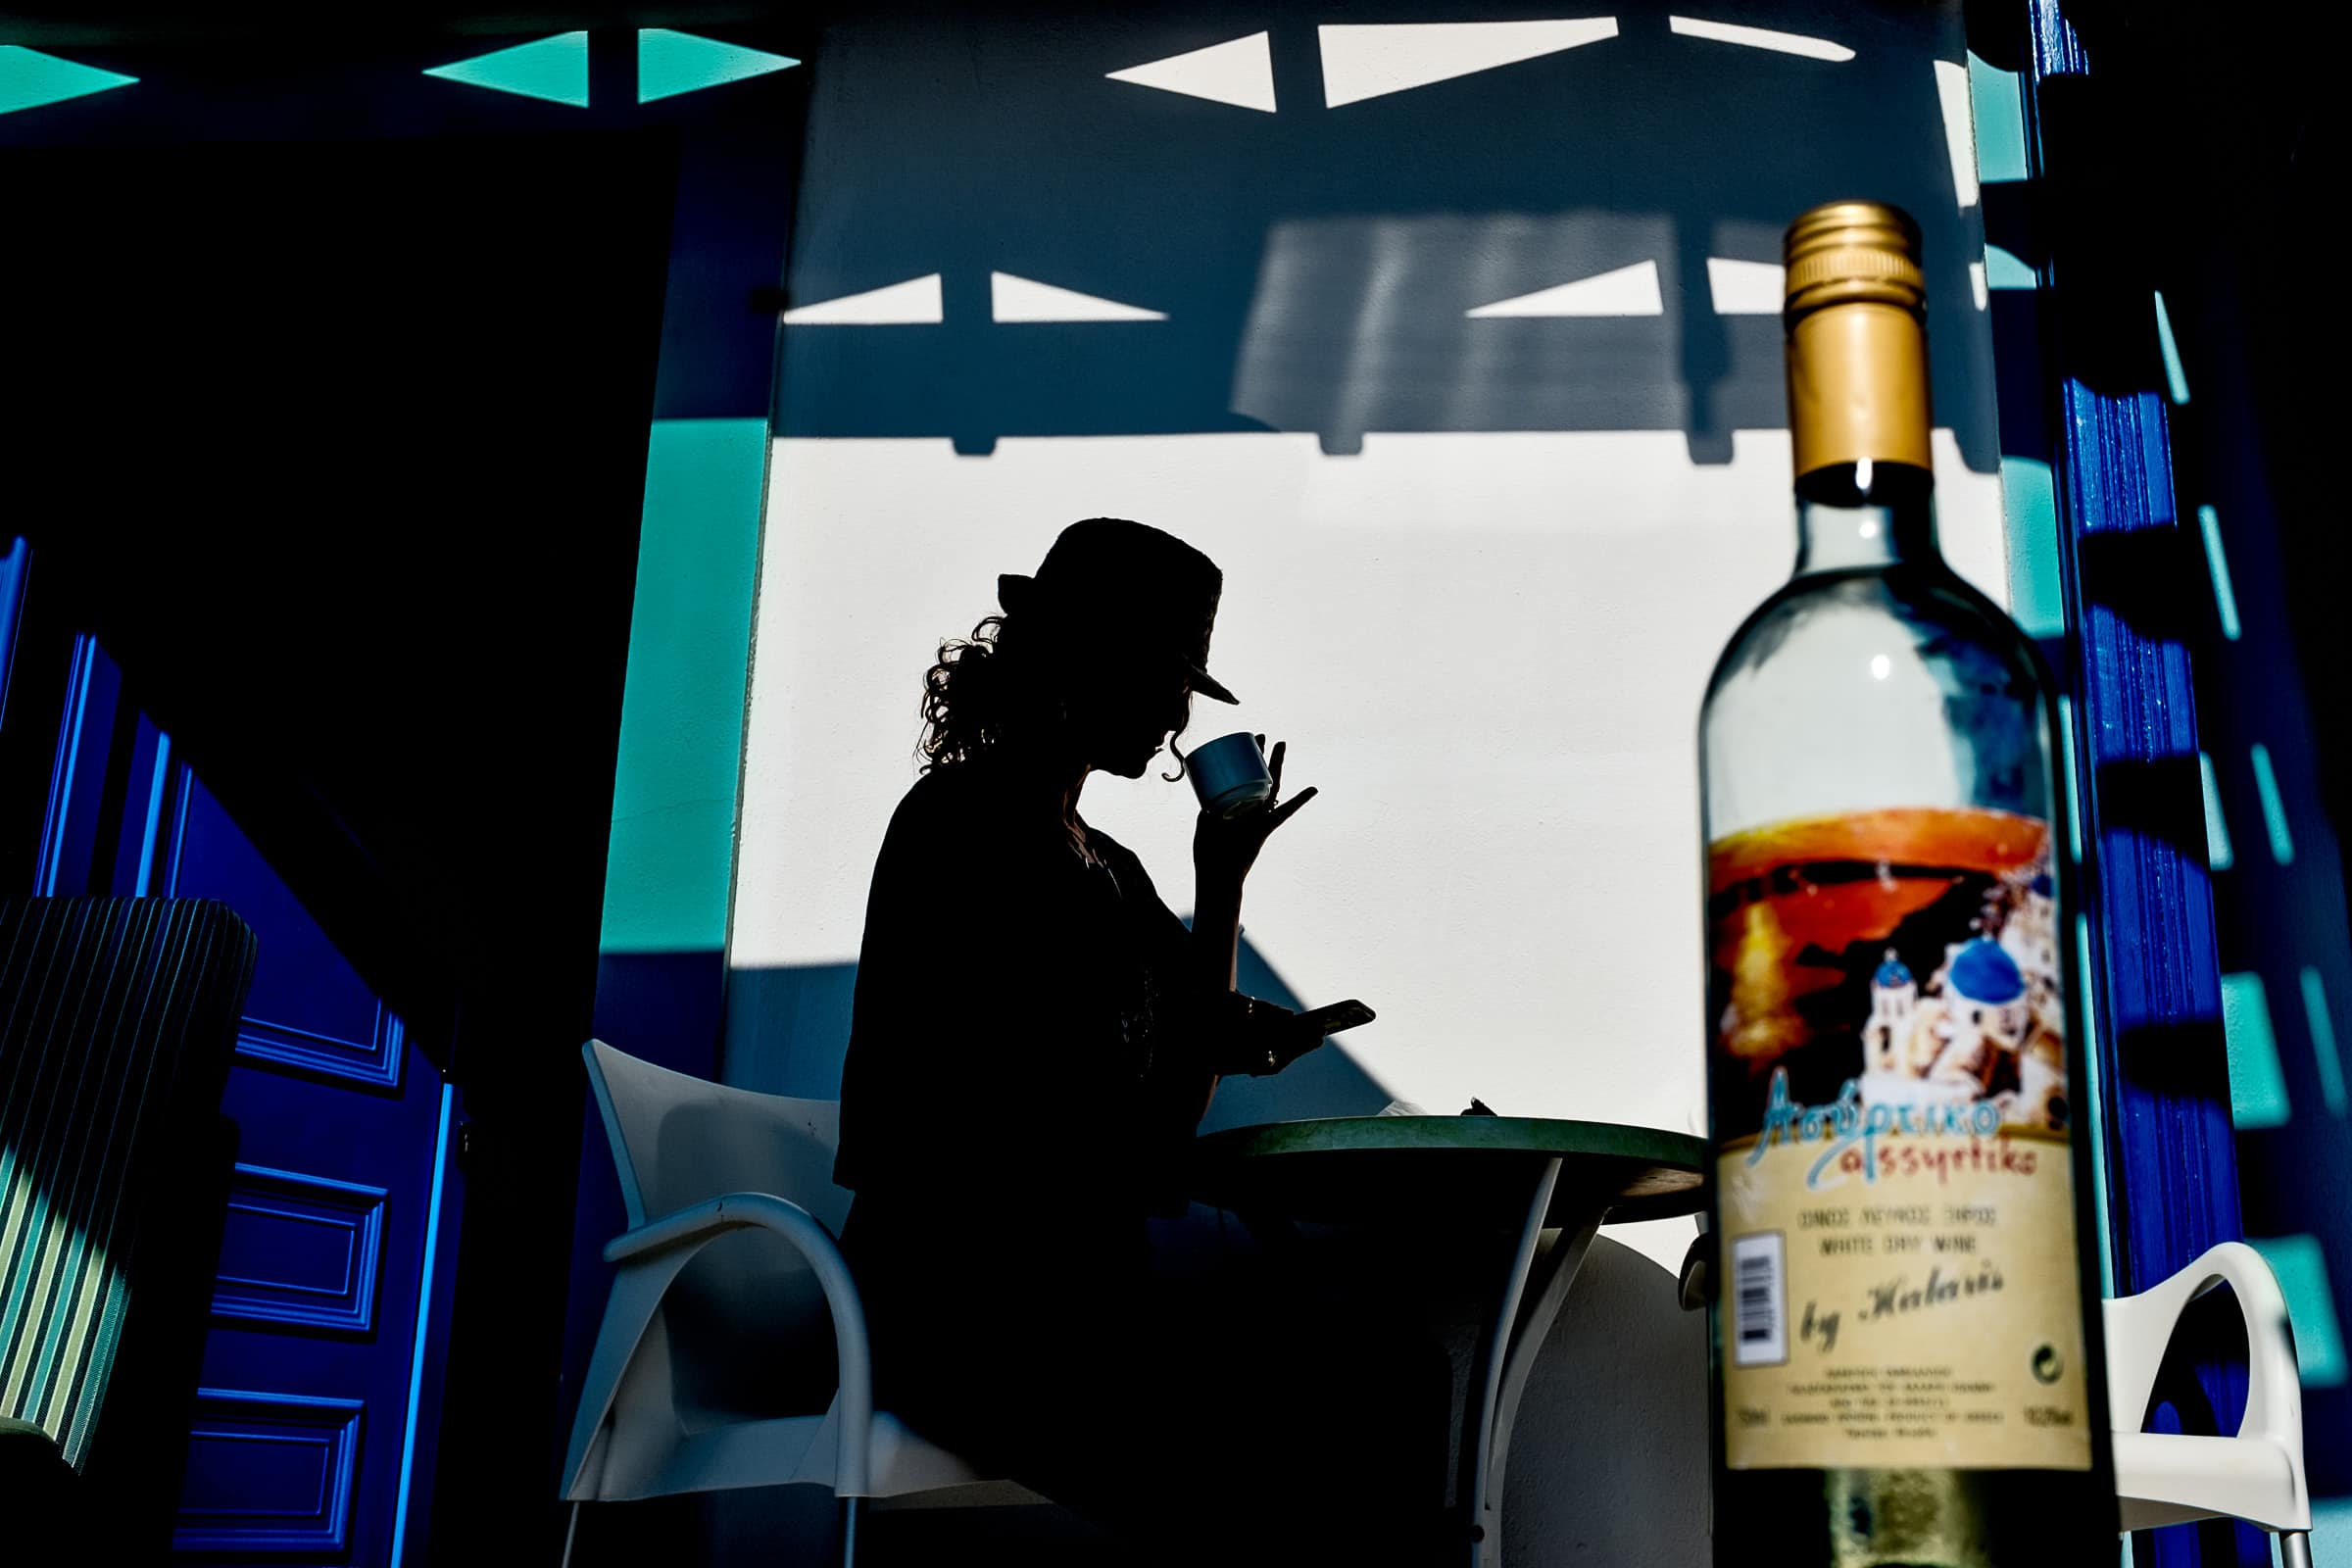 Beautiful silhouette photo of a woman studying Santorini Engagement Photo ideas in Thira, Greece with wine and coffee.